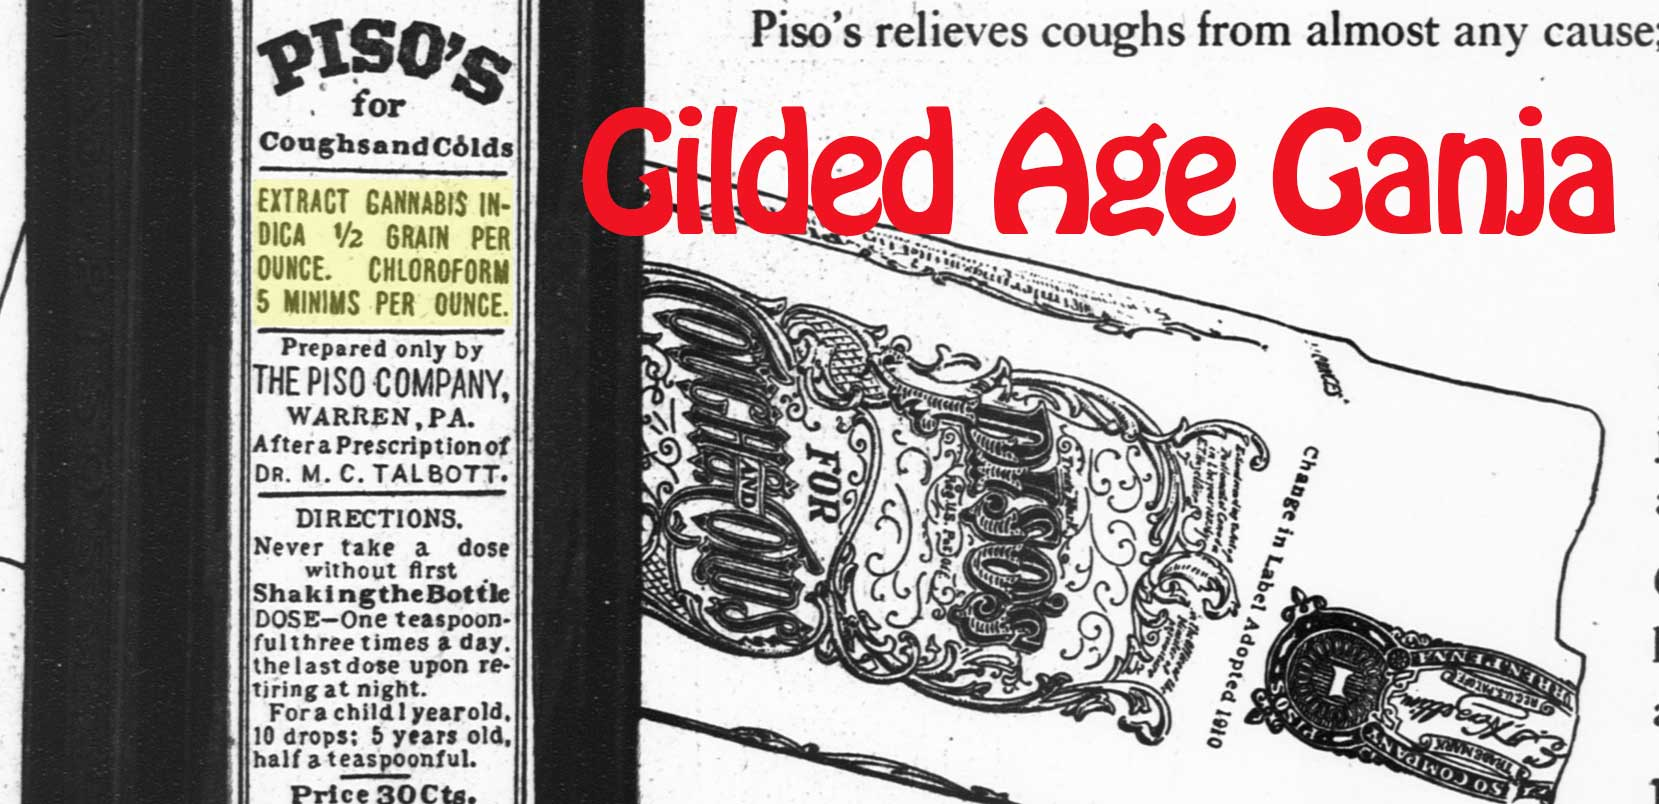 An ad for Pico's cough remedy, including cannabis as a key ingredient.